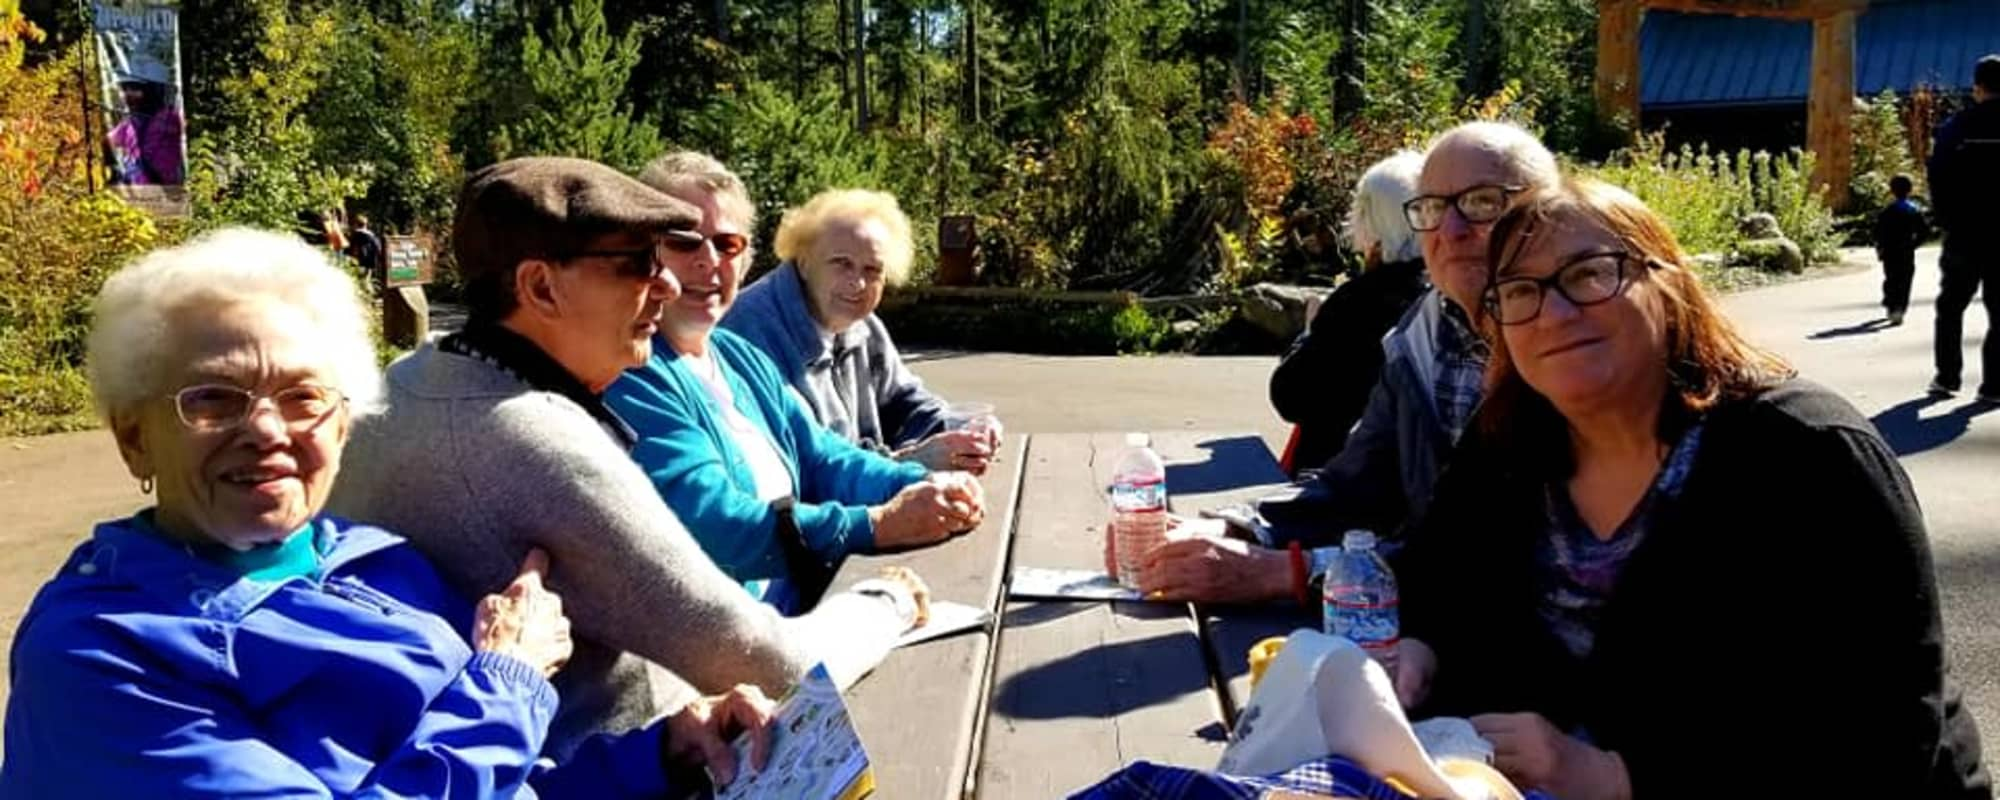 Picnic at The Firs in Olympia, Washington